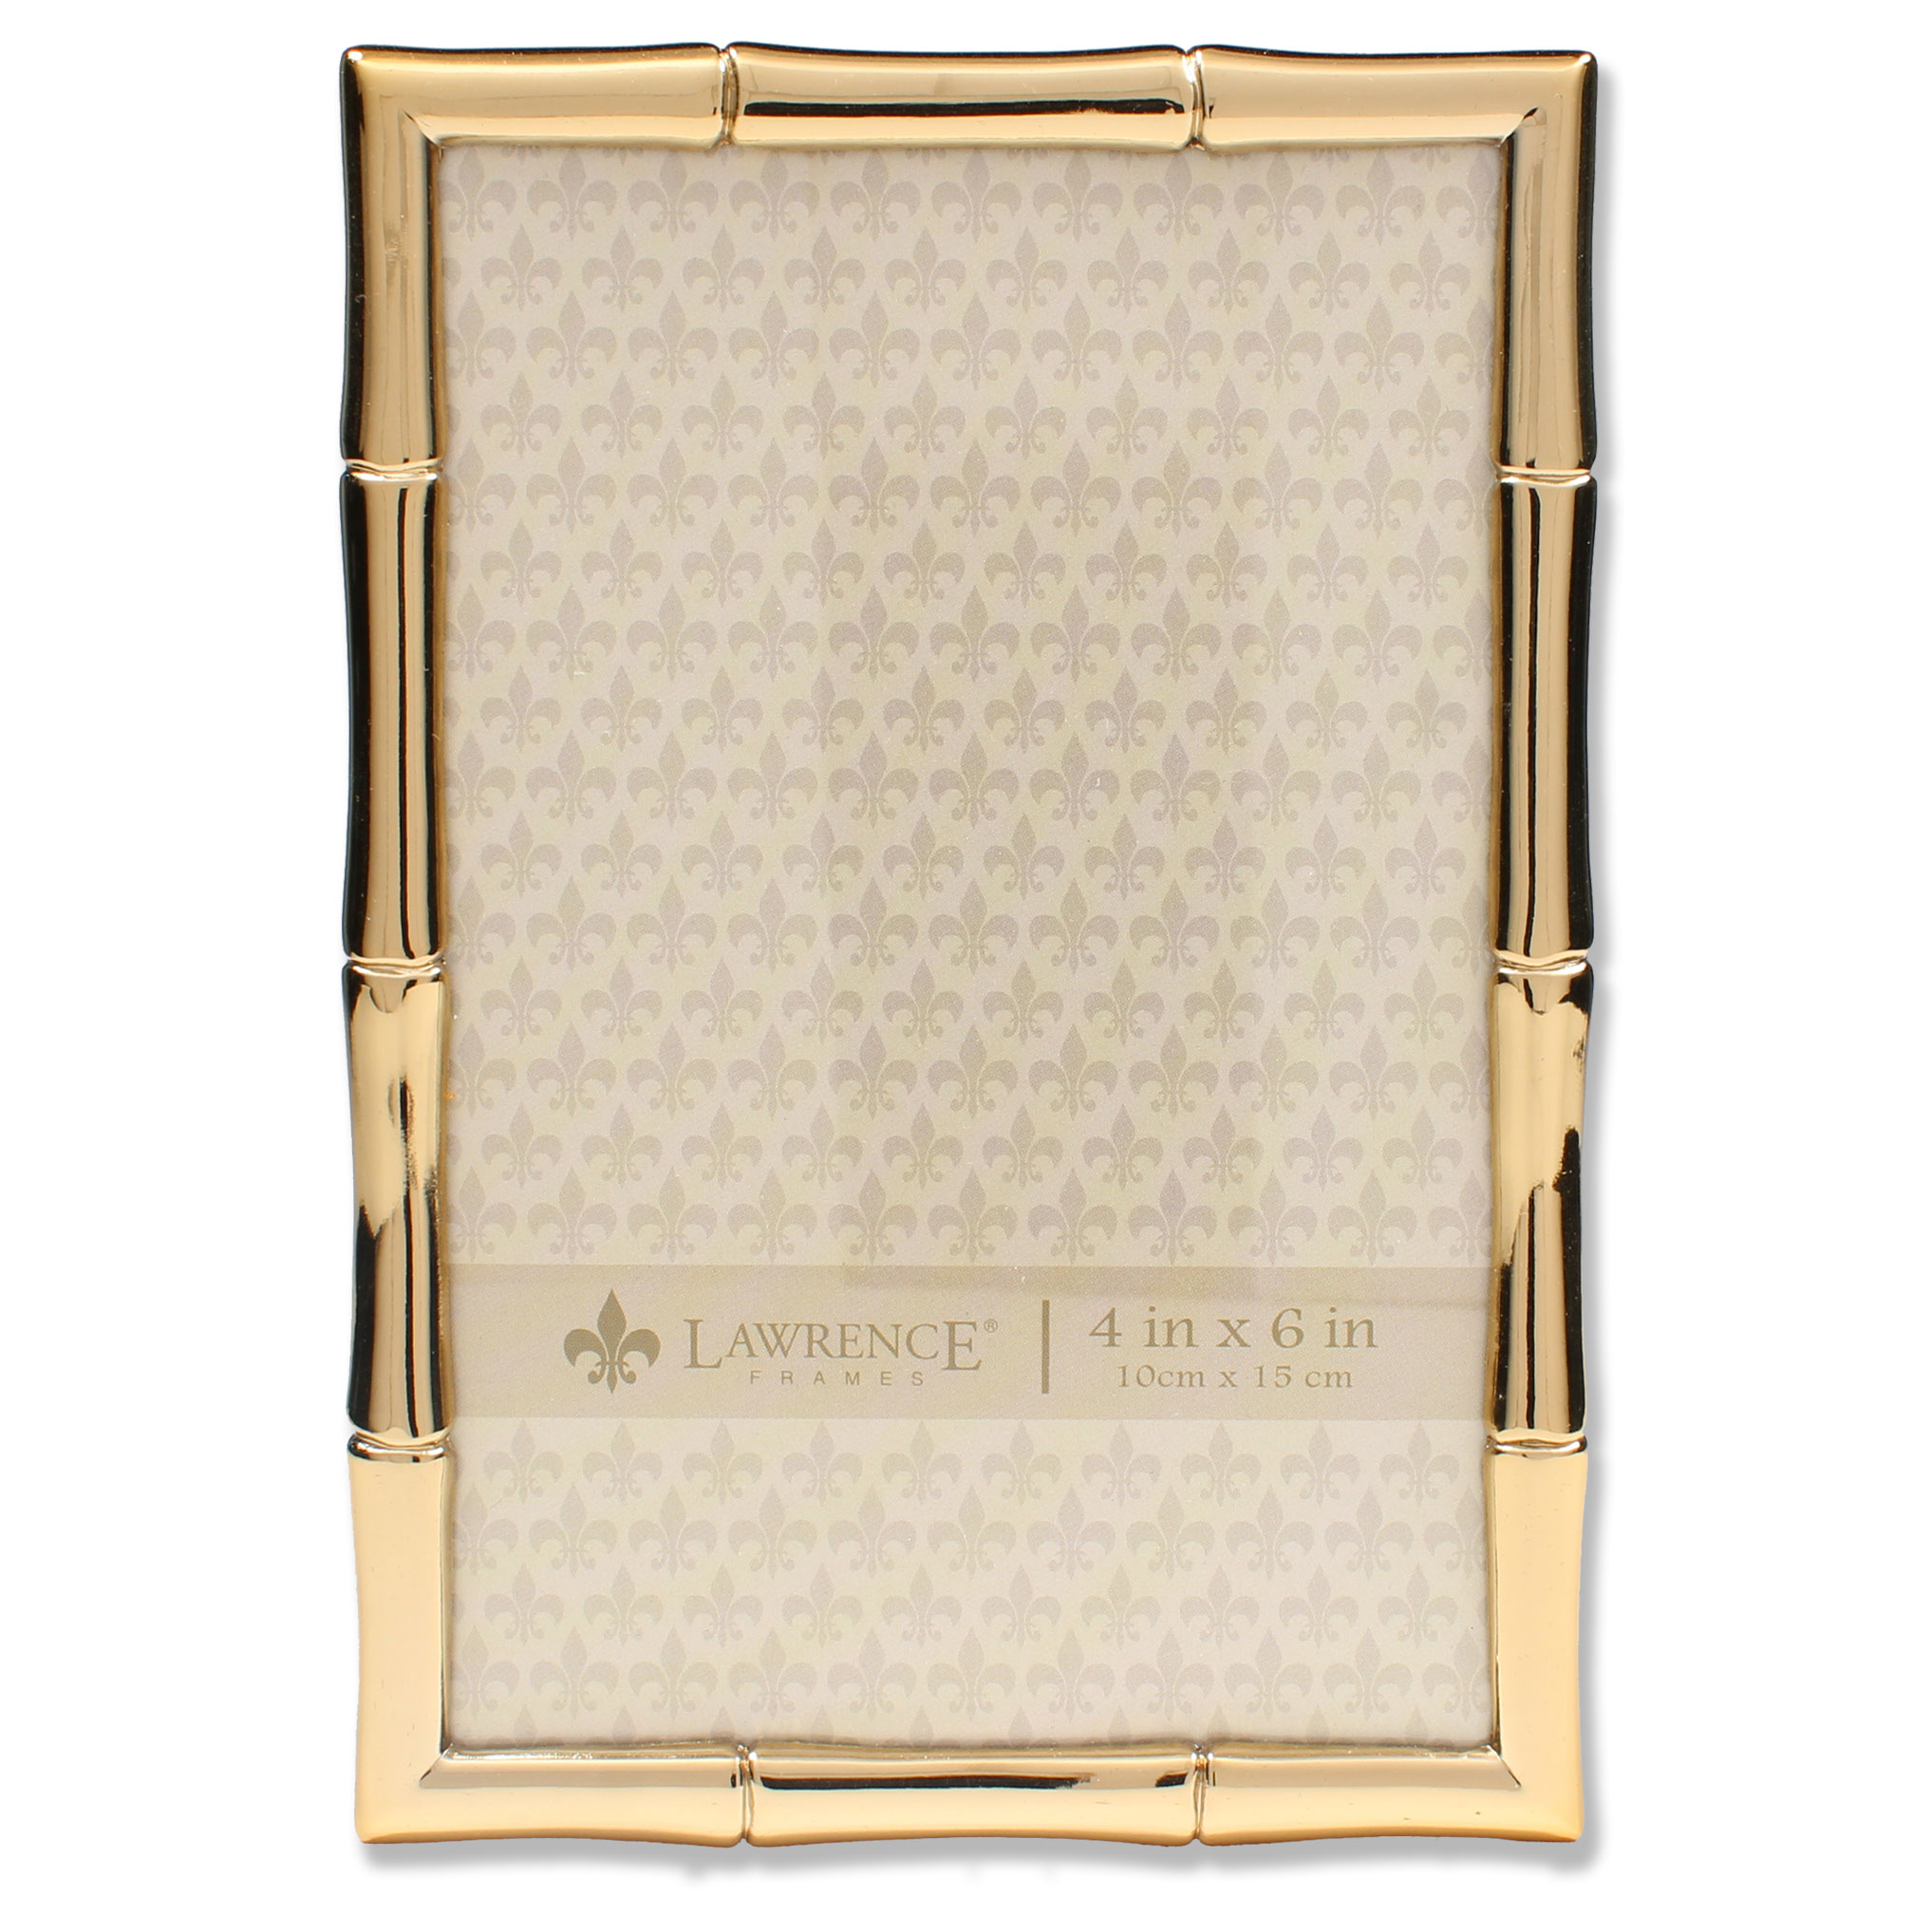 4x6 Gold Metal Picture Frame with Bamboo Design